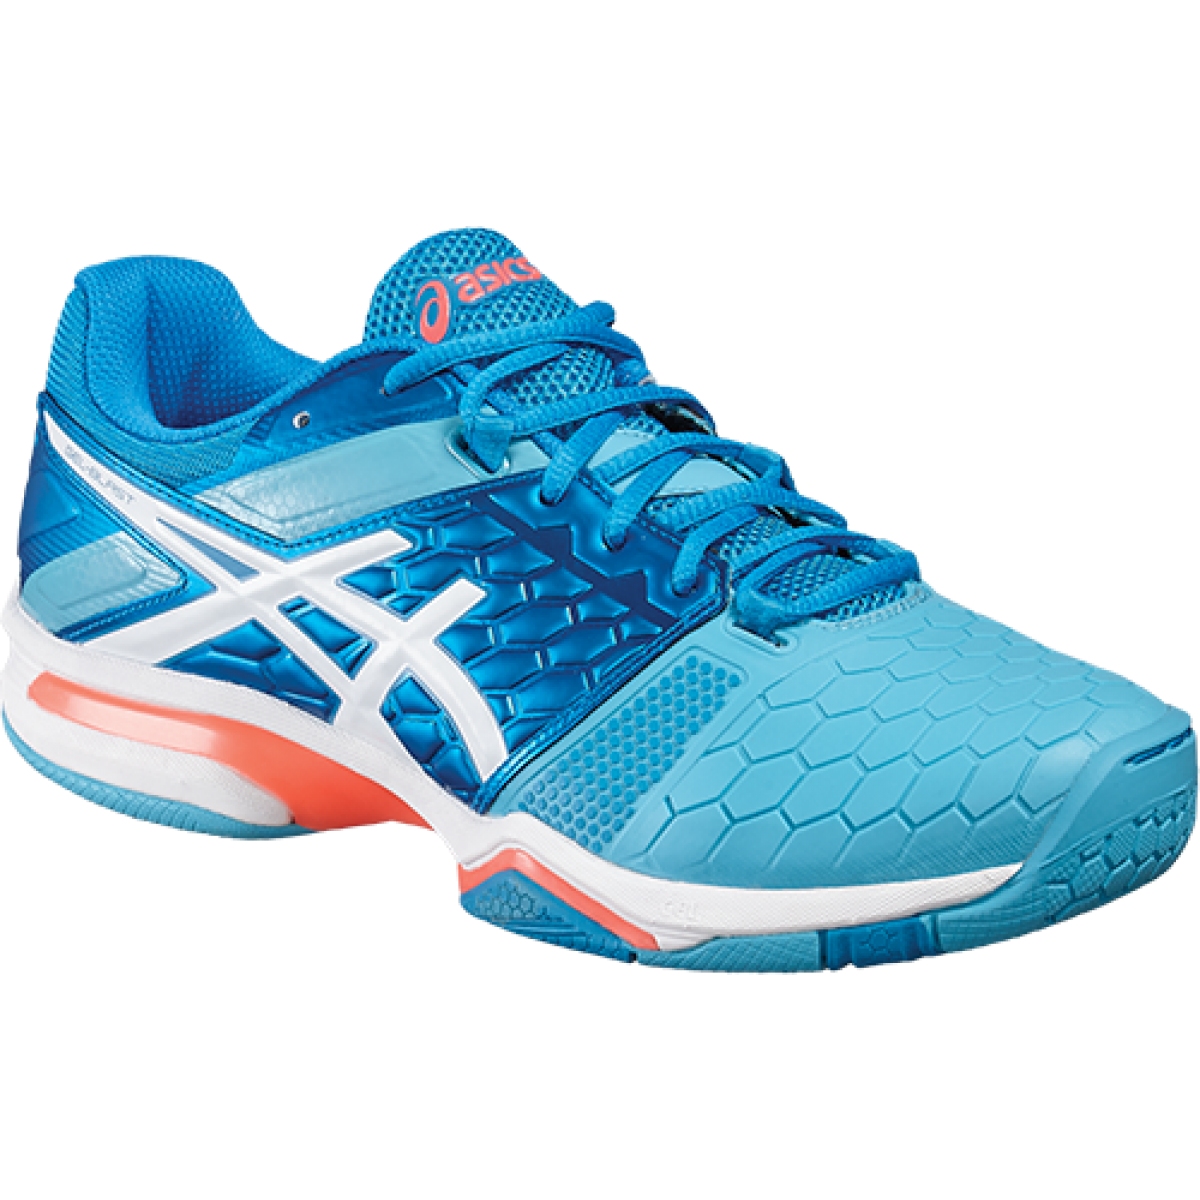 Asics Gel Blast 7 bluee Jewel White Flash Coral Women's court shoes E658Y 4301